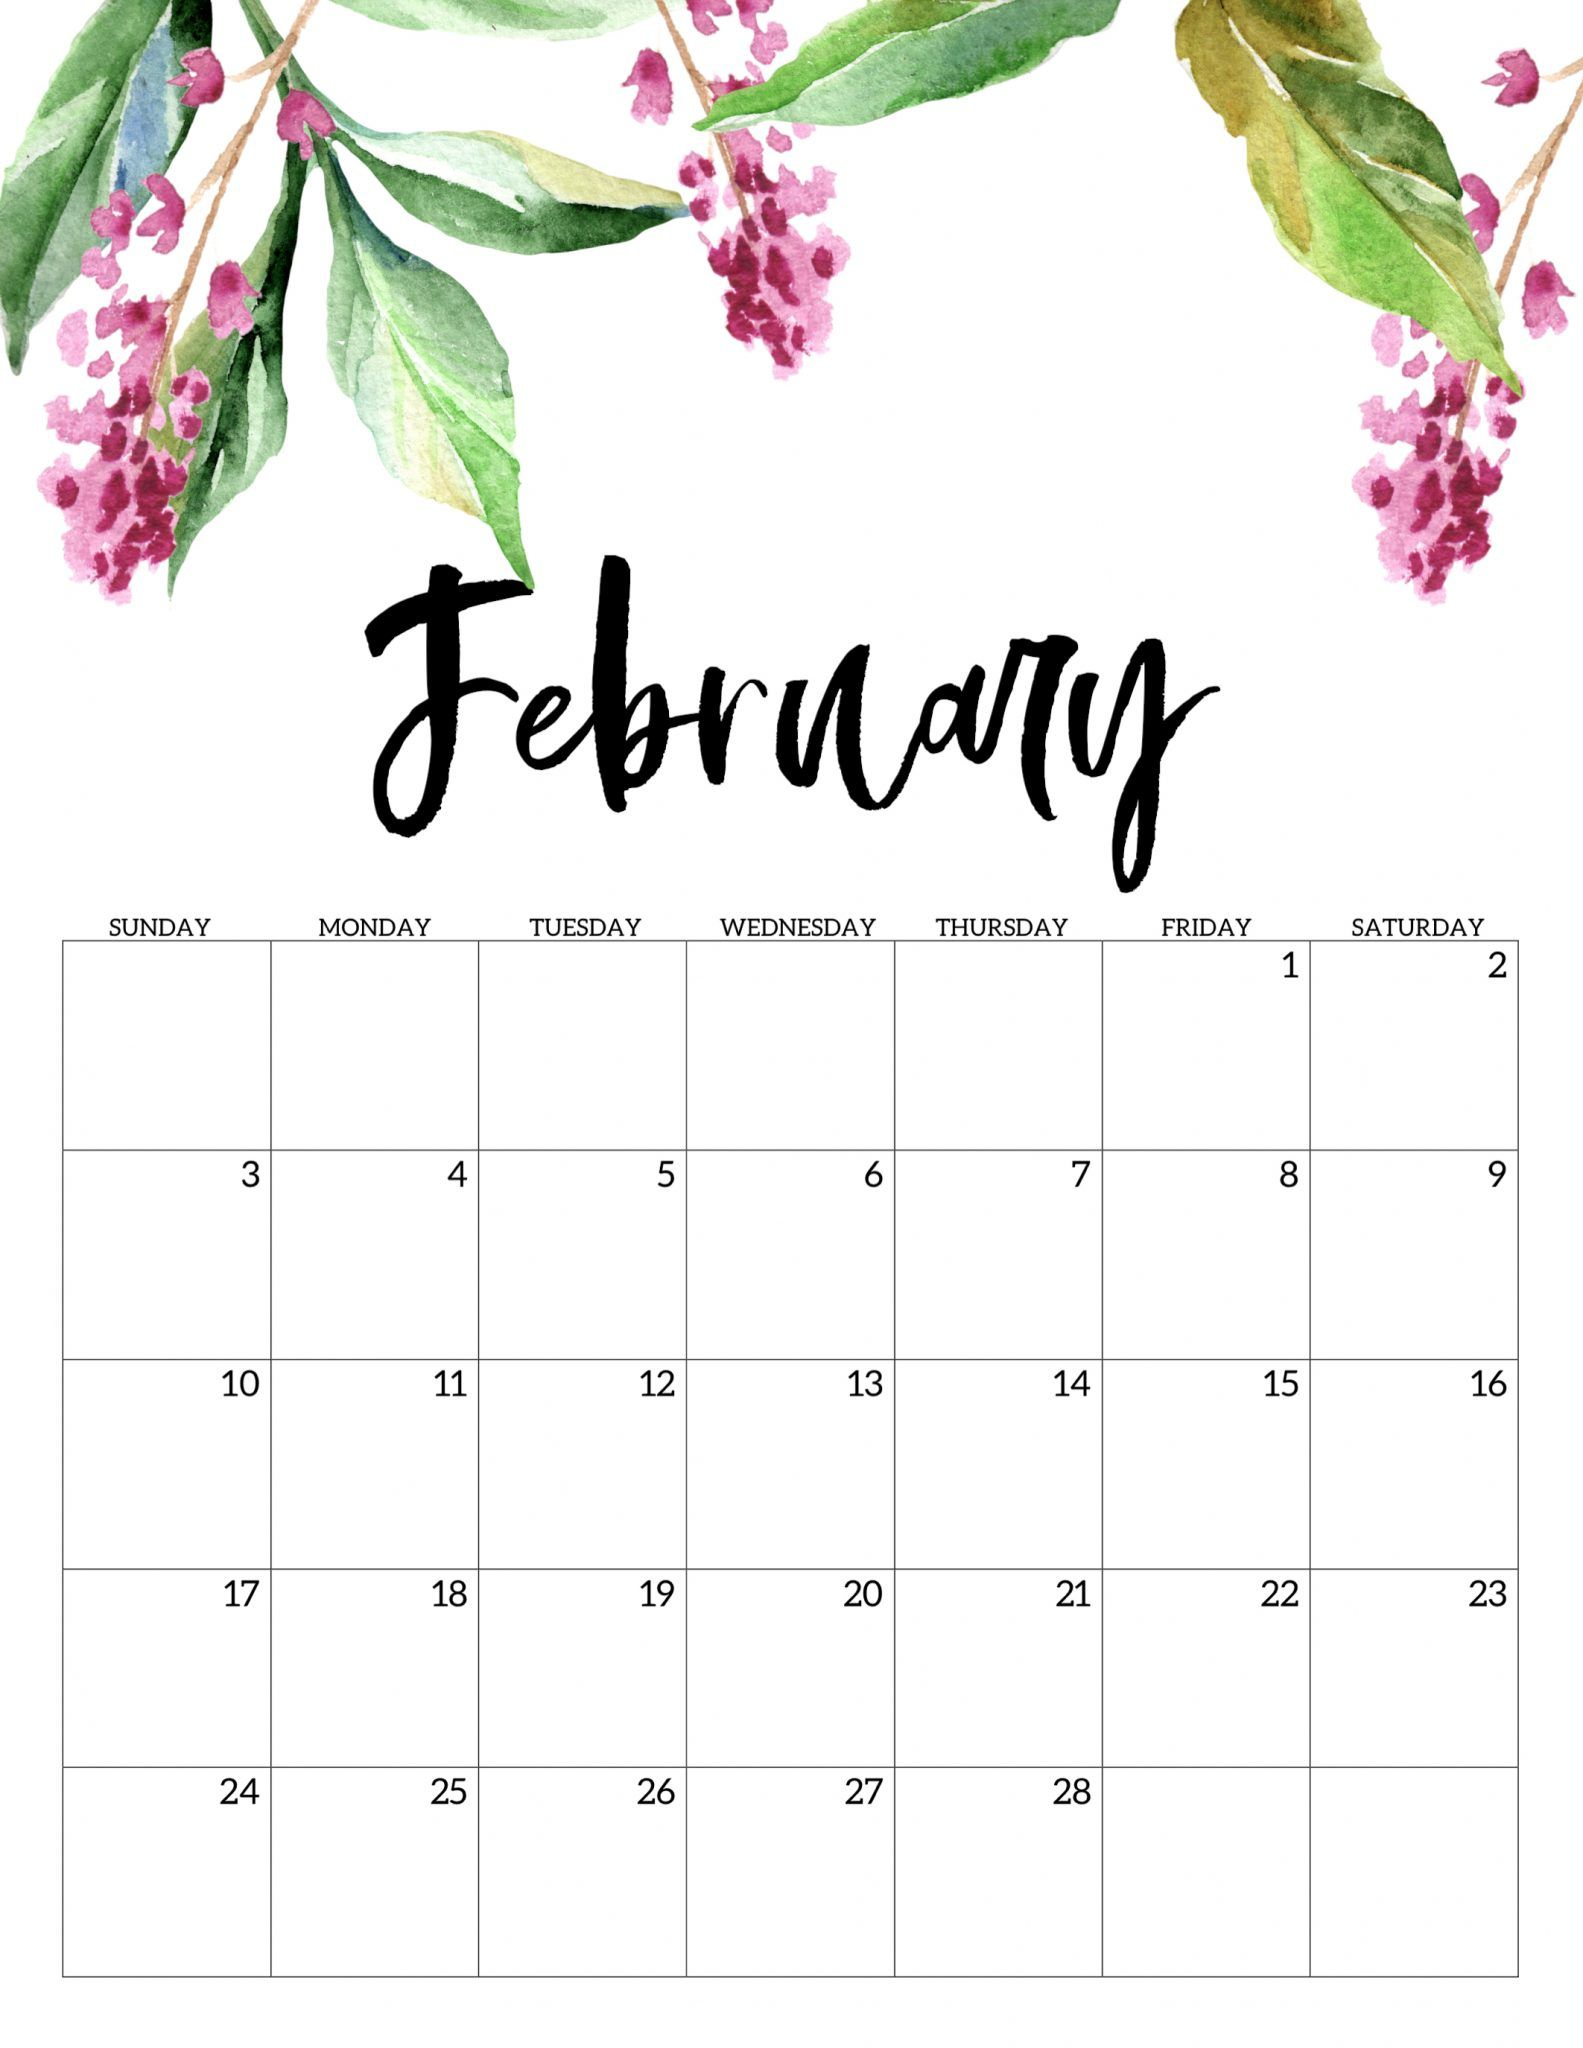 Calendar February 2019 Flowers Cute February 2019 Printable Calendar #February #February2019